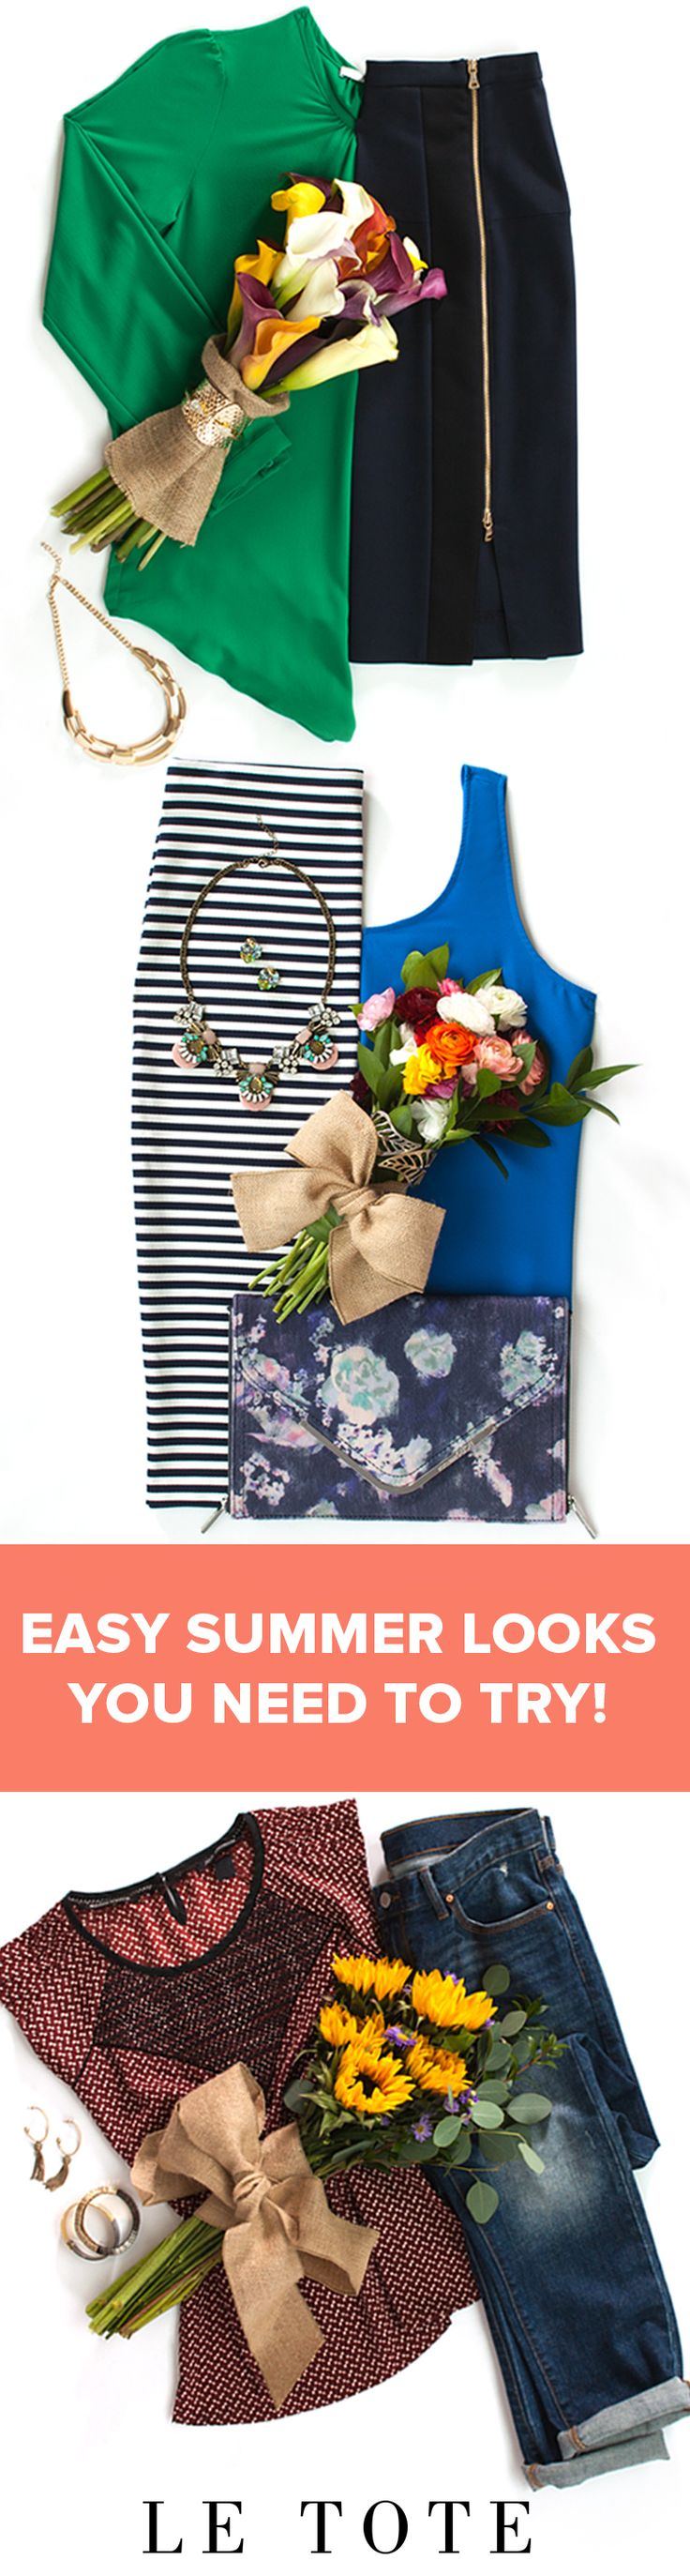 These are easy spring and summer outfit ideas for work or the weekend! You can rent all of these summer fashion outfits for women on www.letote.com! Have you tried a fashion subscription like LE TOTE yet?